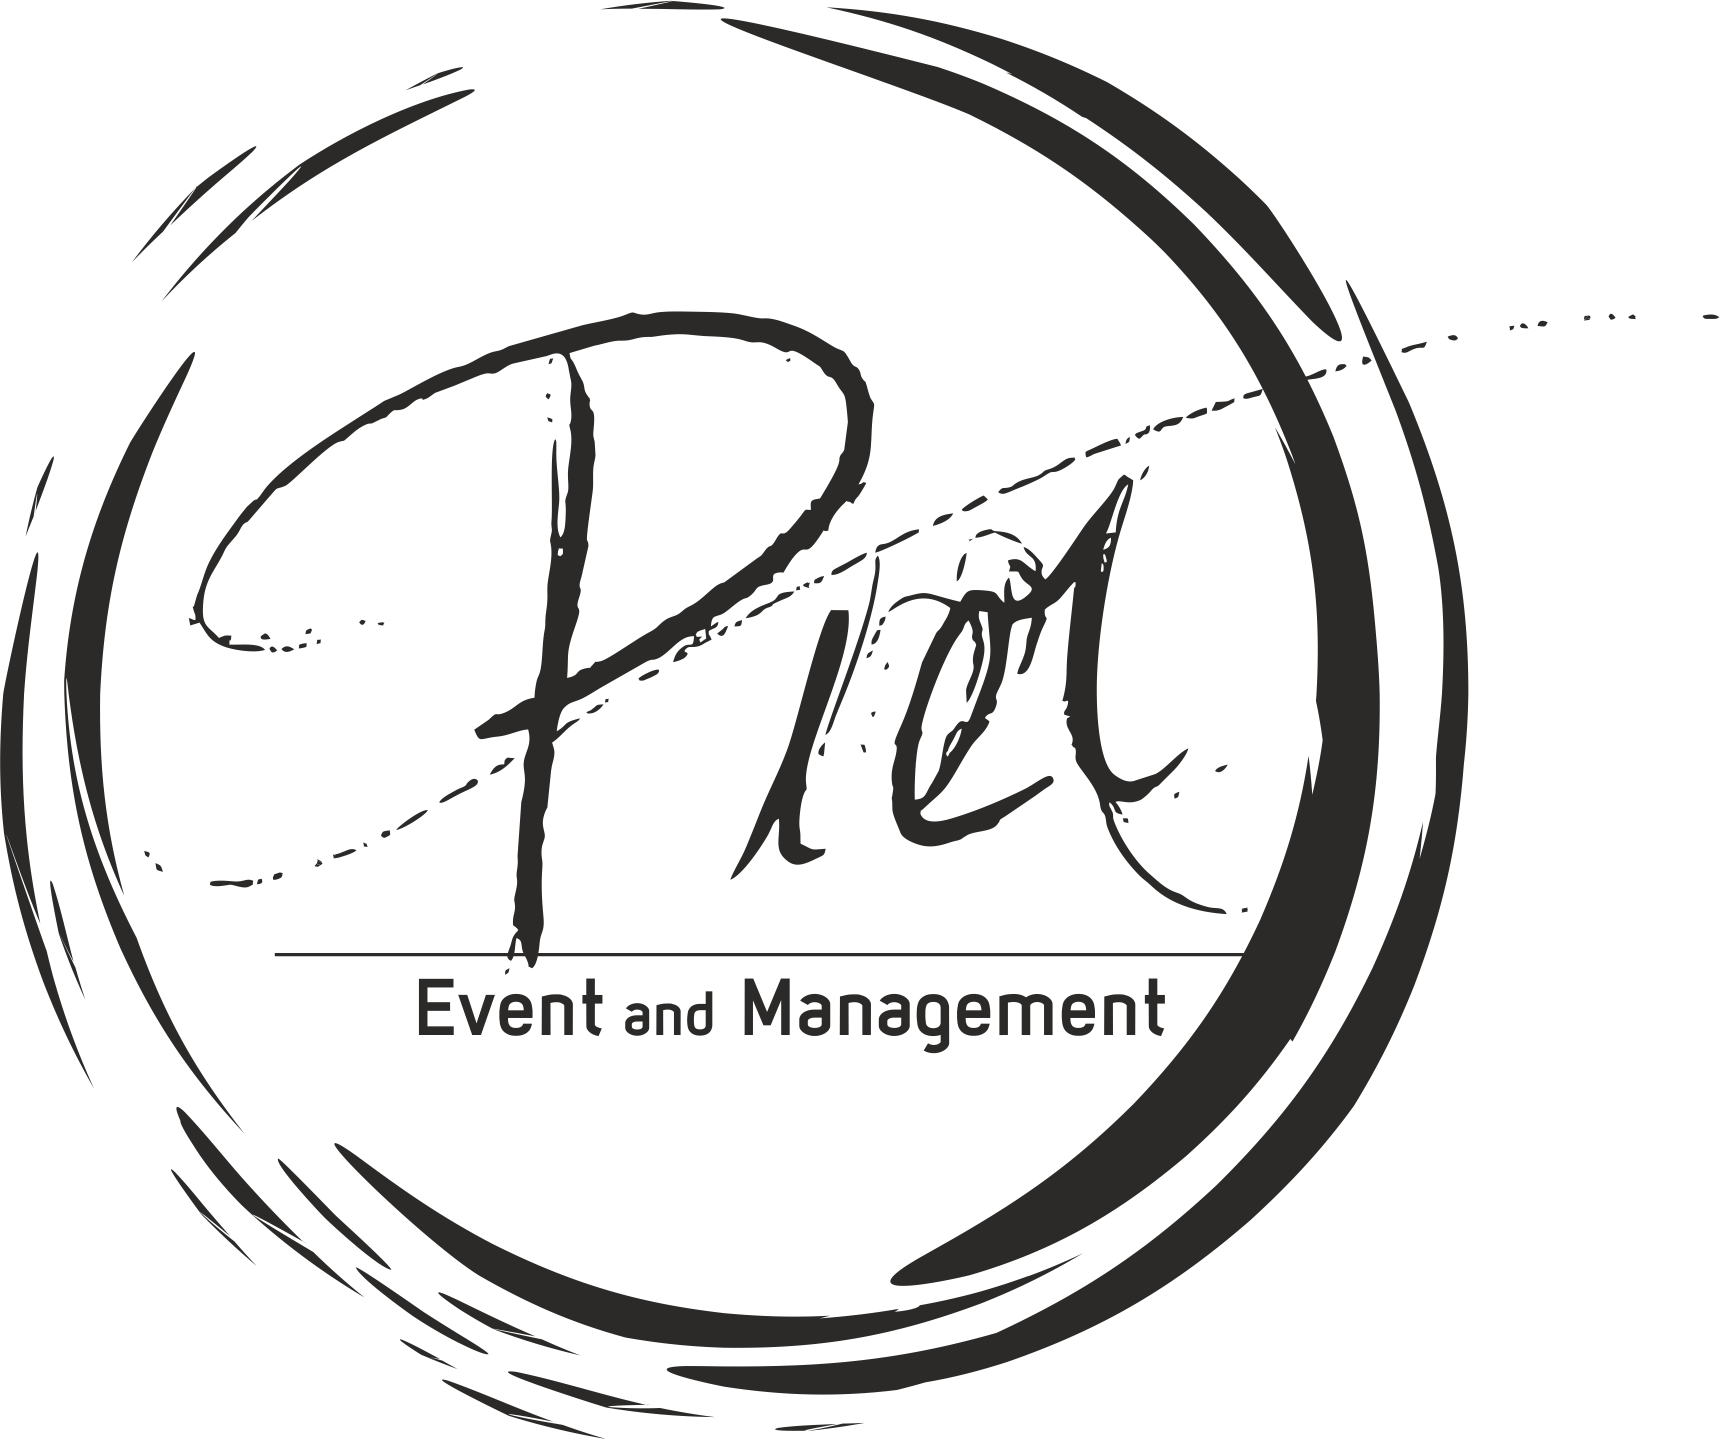 PIER – Event and Management